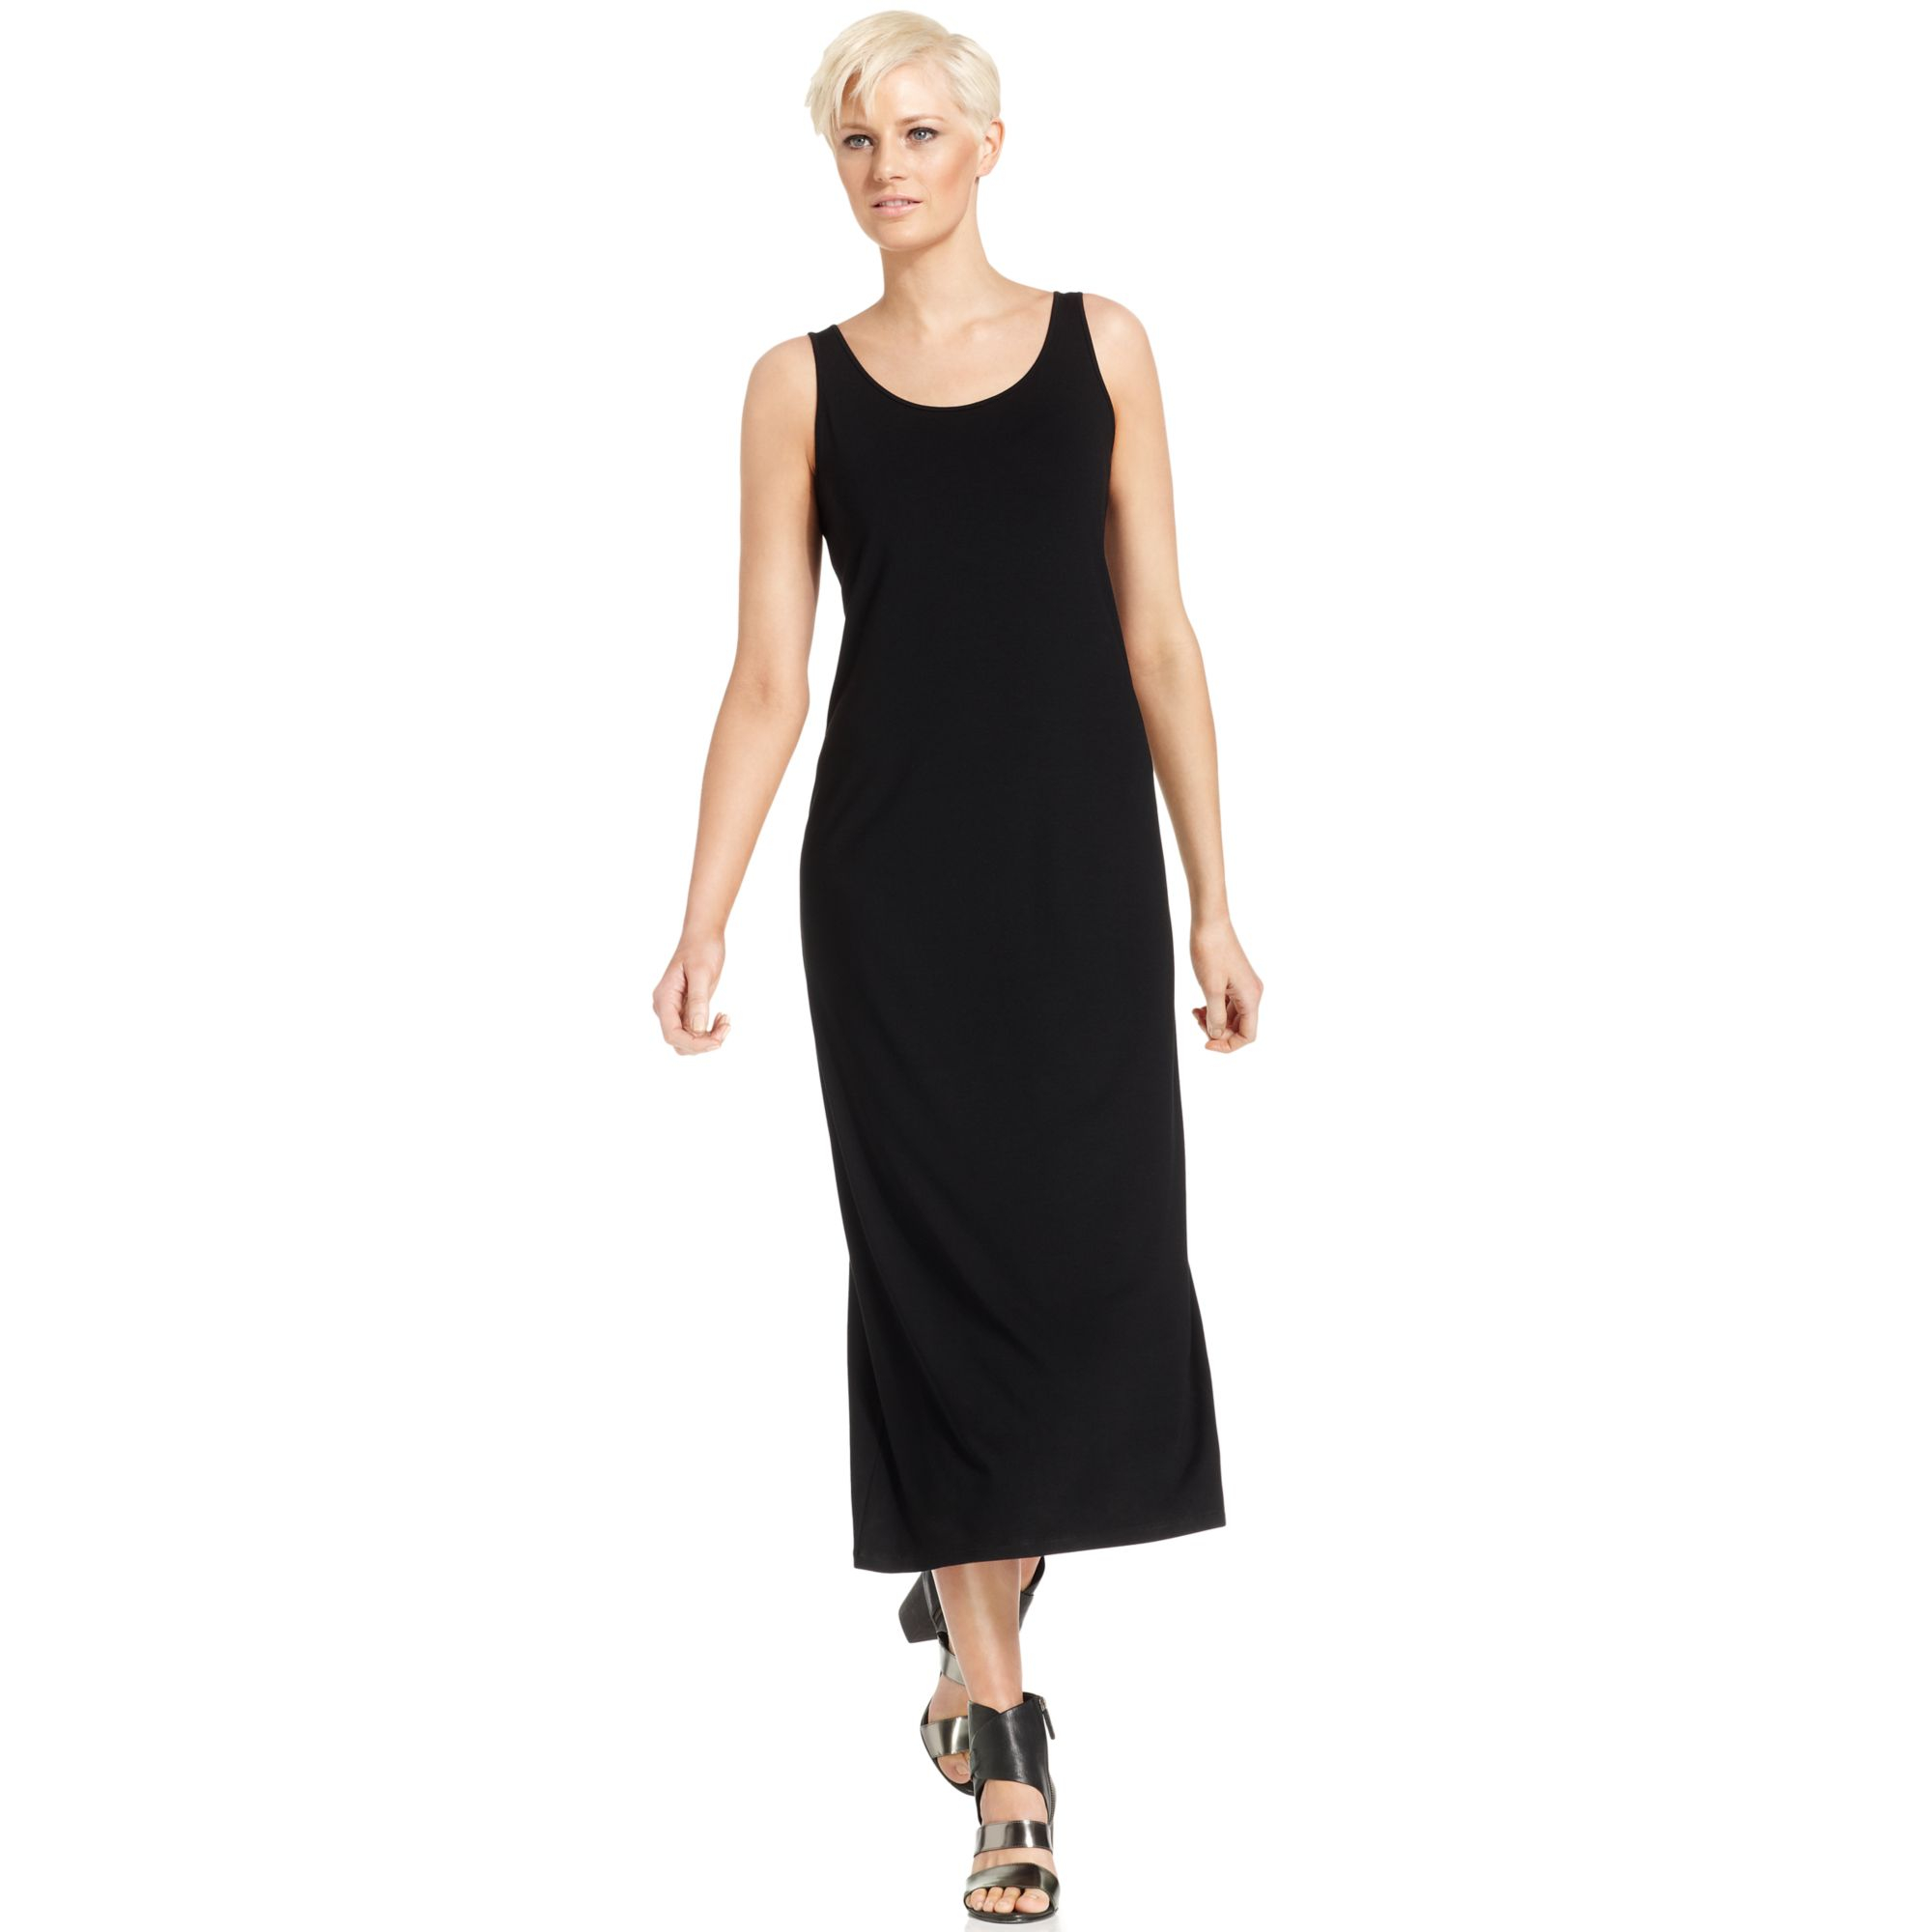 c0fa732494a Eileen Fisher Sleeveless Scoop Neck Maxi Dress in Black - Lyst